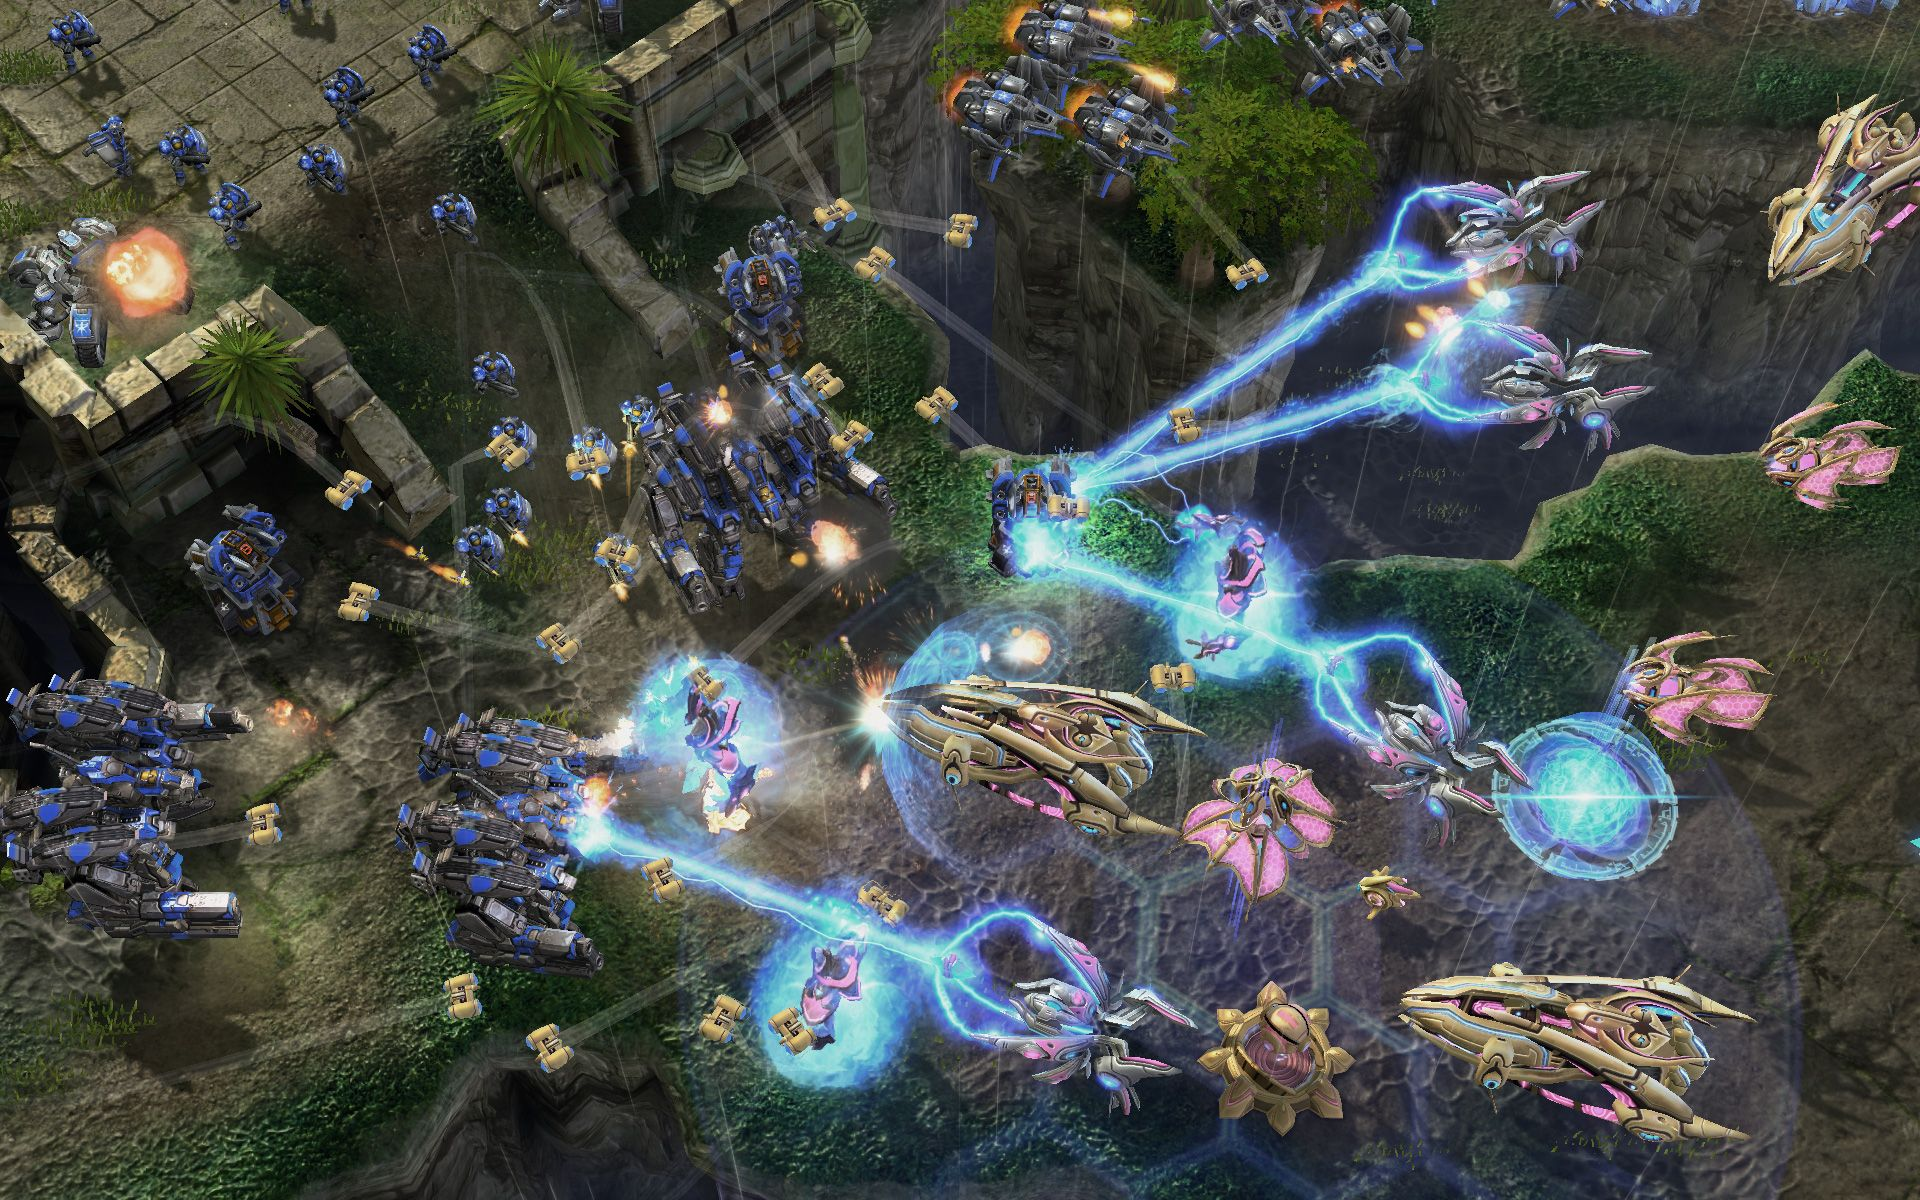 Starcraft 2 will go free-to-play later this month